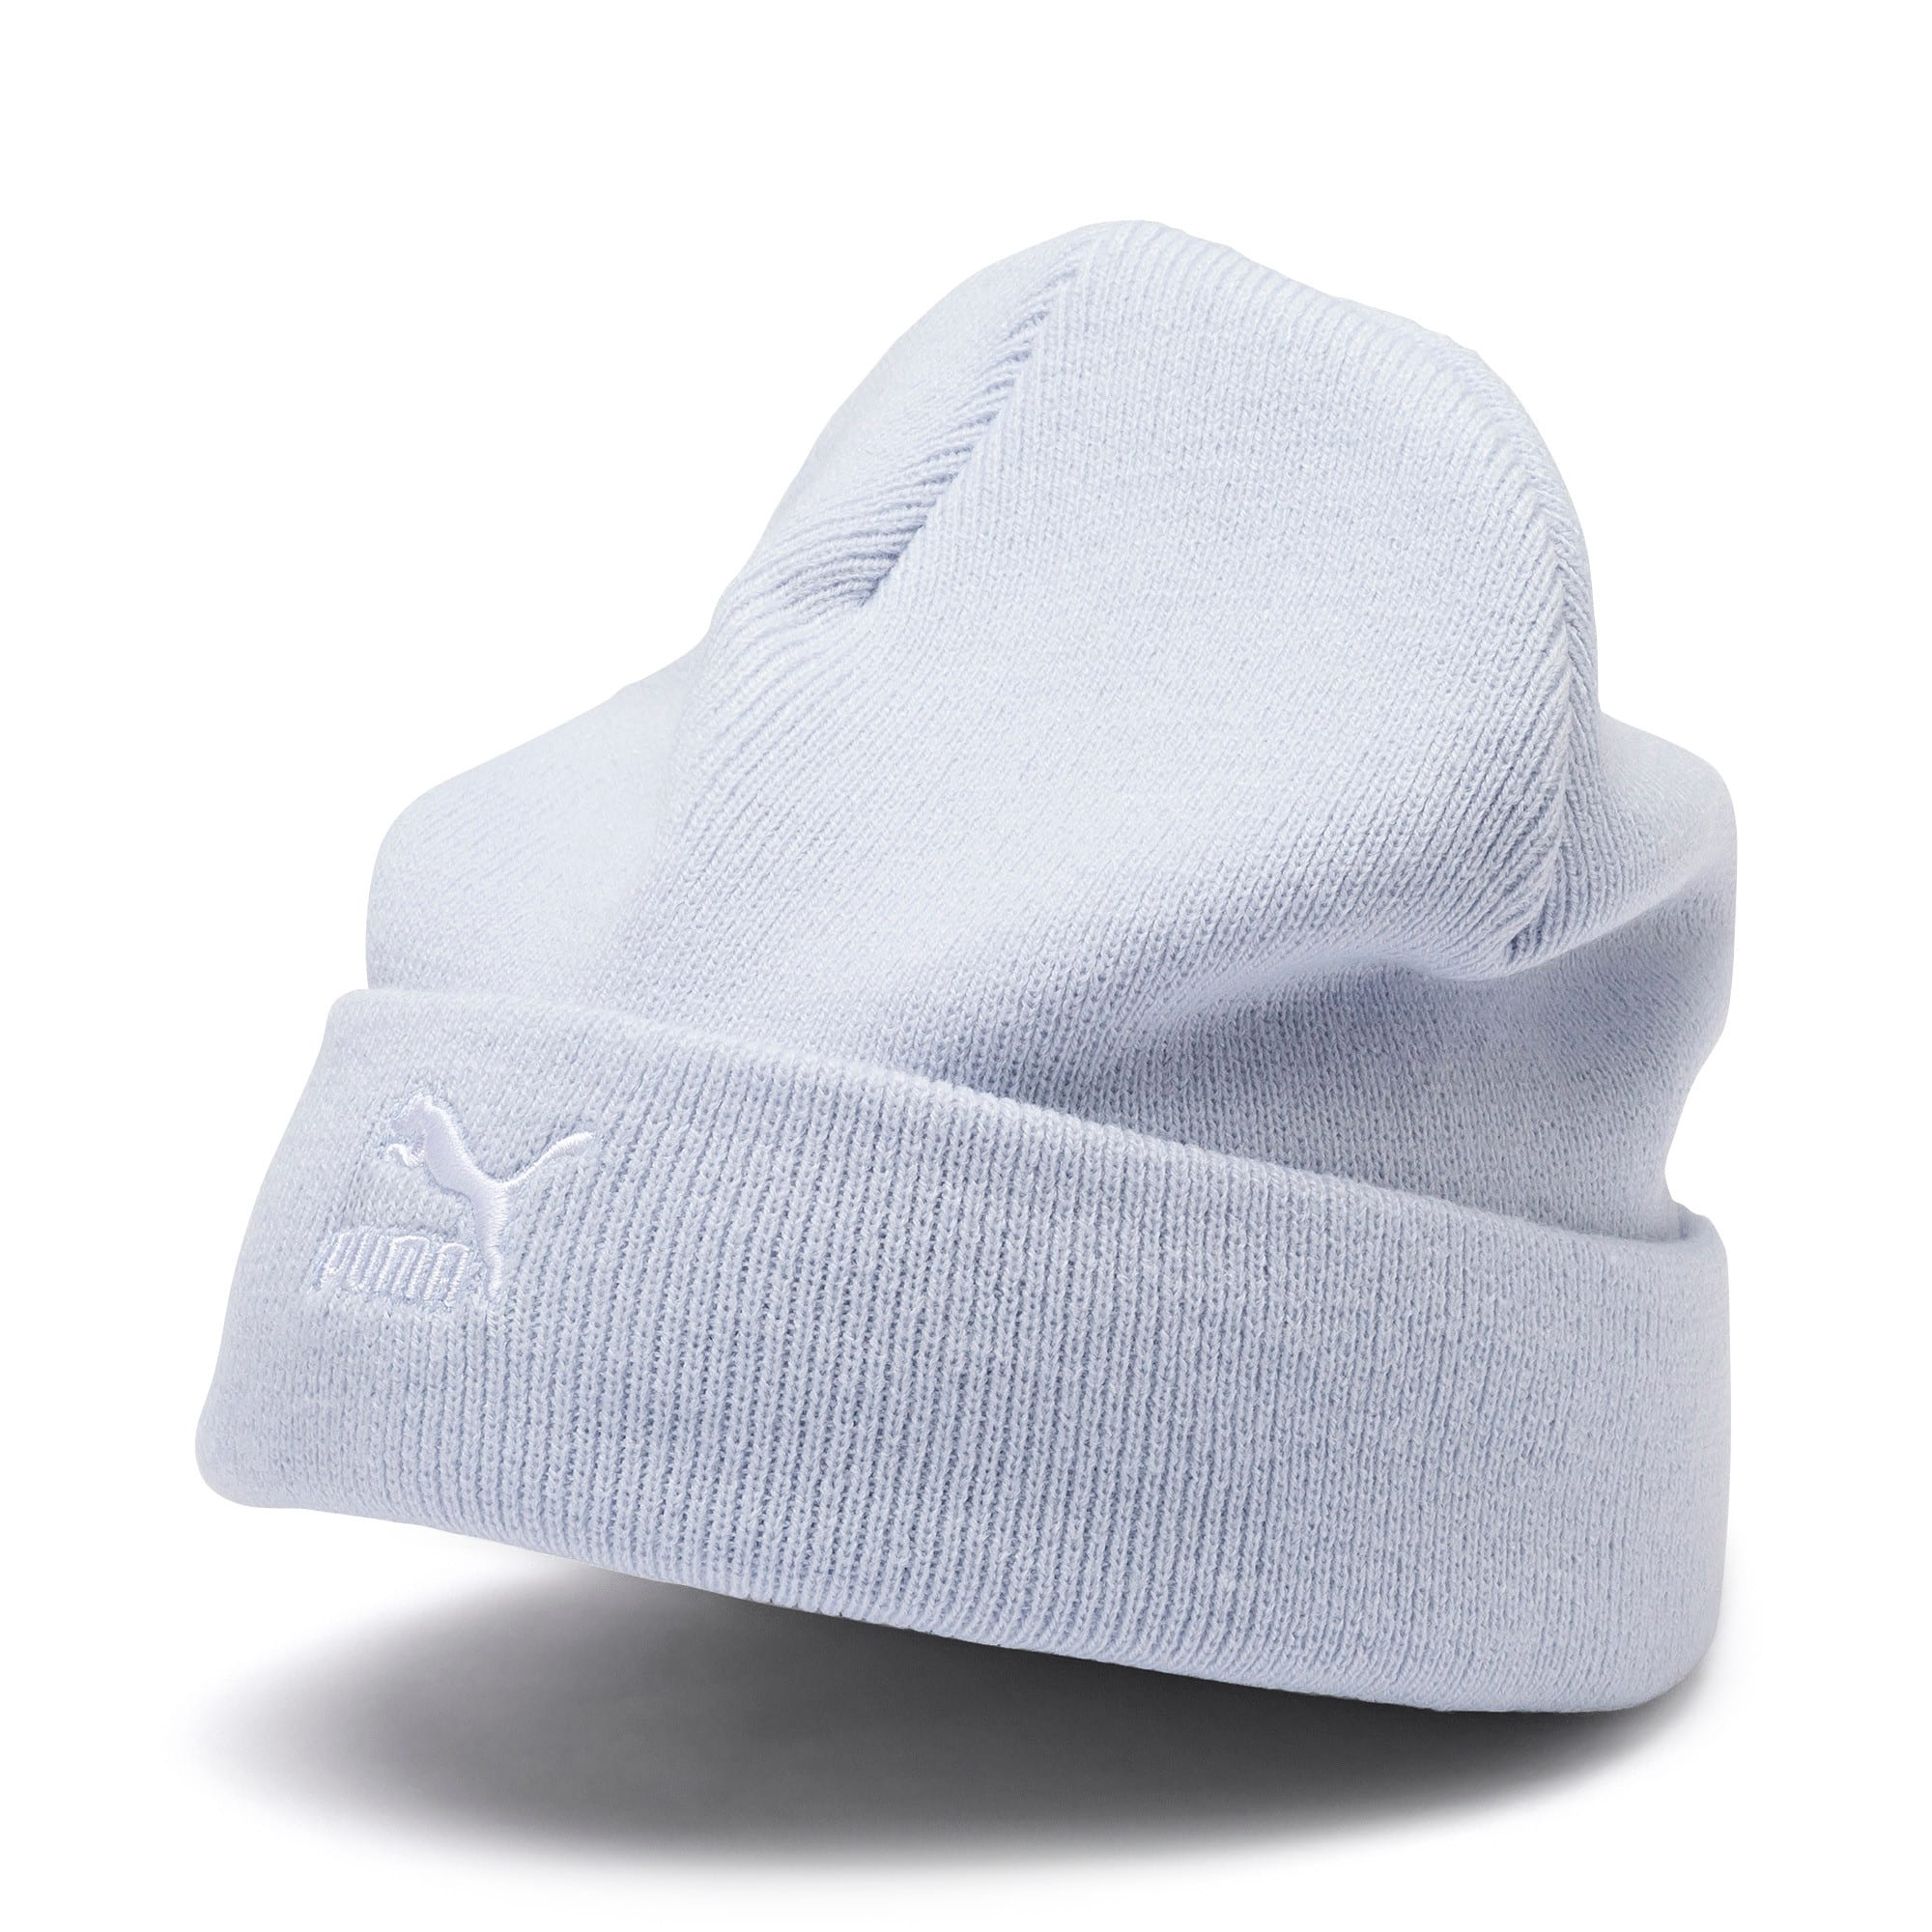 Thumbnail 1 of Archive Mid Fit Beanie, Heather, medium